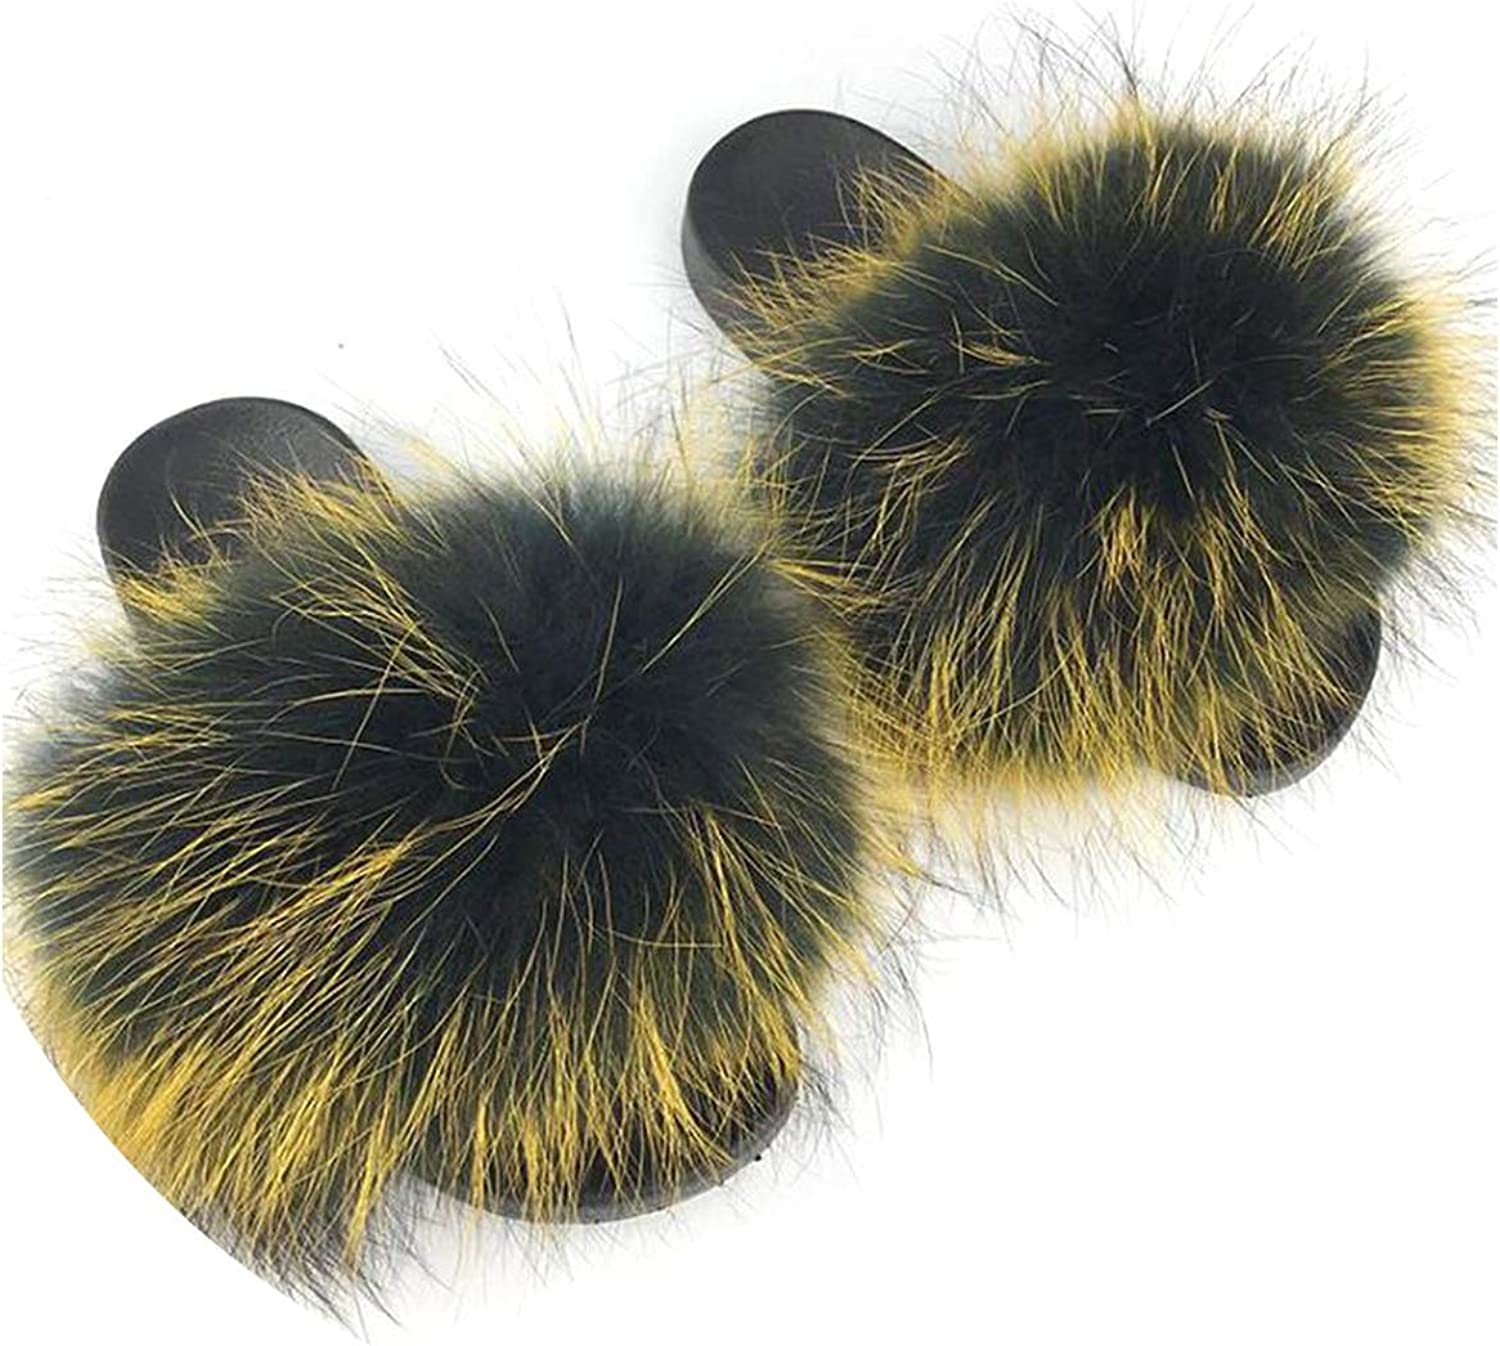 Just XiaoZhouZhou Real Raccoon Fur Slippers Women Sliders Casual Fox Hair Flat Fluffy Fashion Home Summer Big Size 45 Furry Flip Flops shoes,color D,9